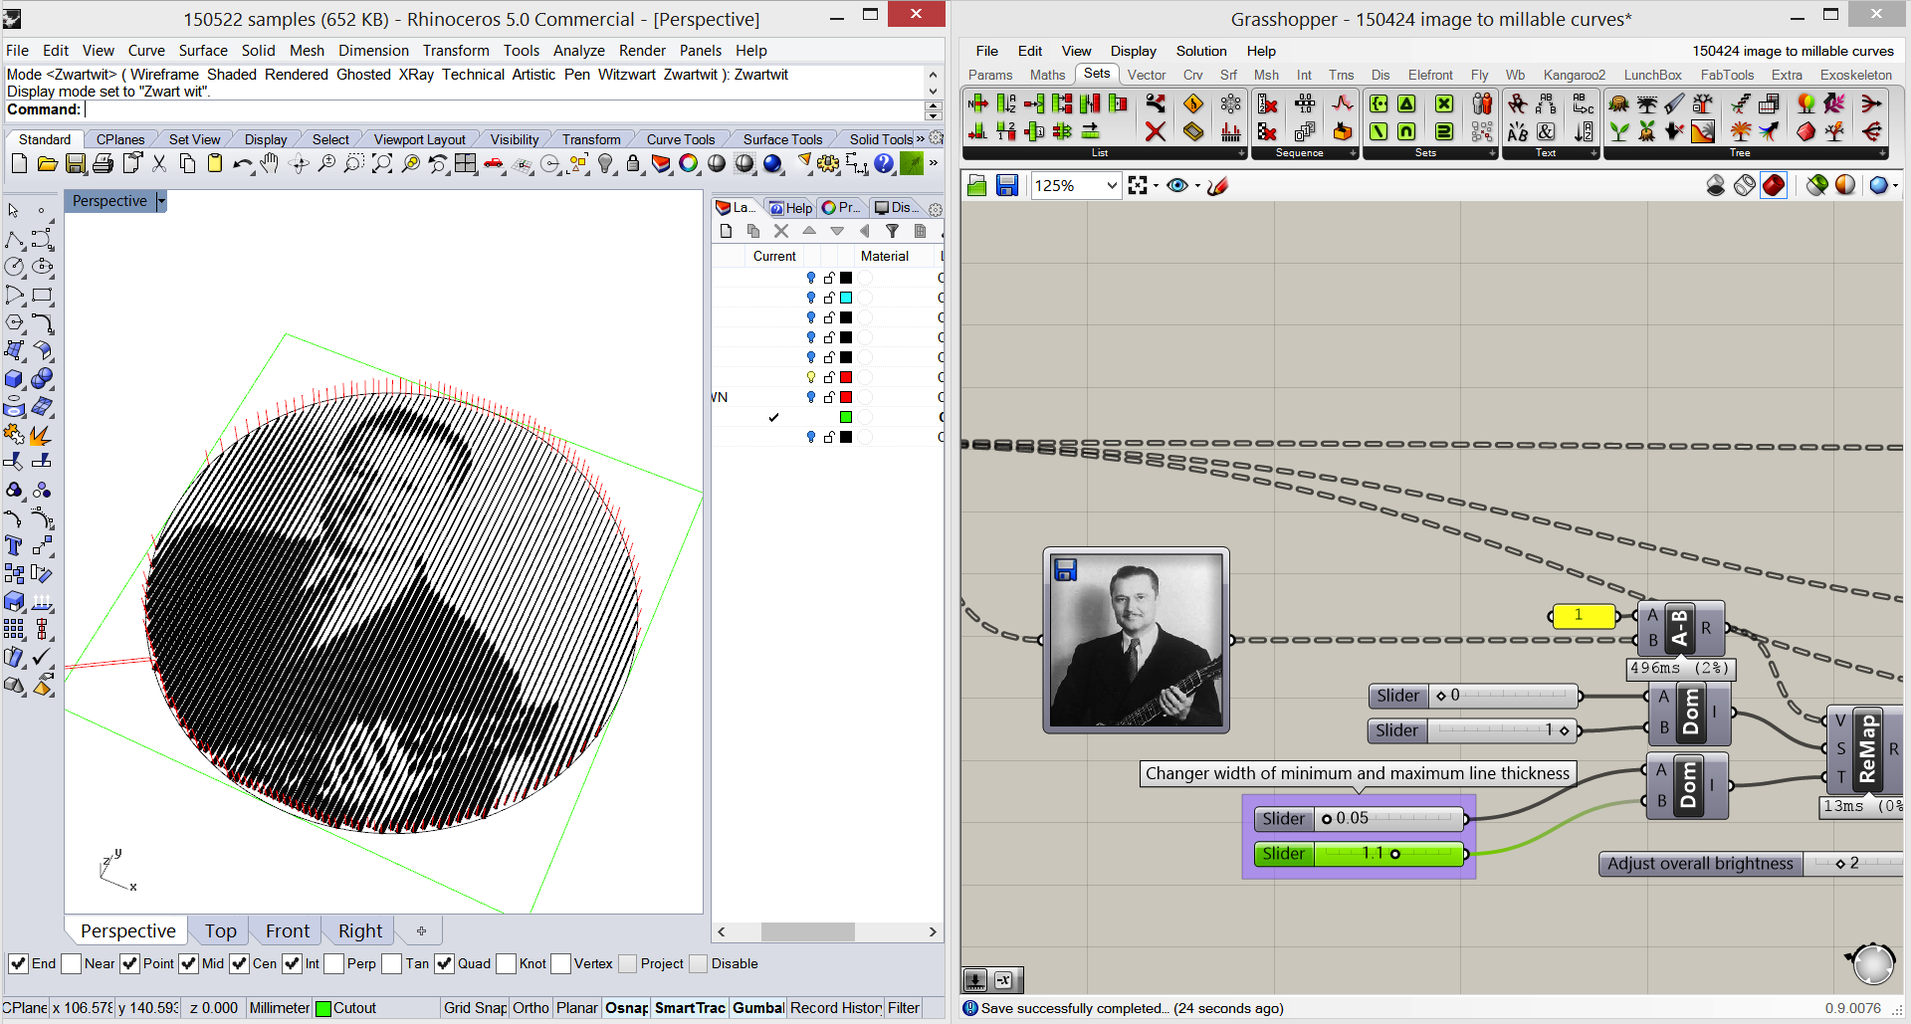 Example 1: Convert Image to 3D-milling Using a V-bit